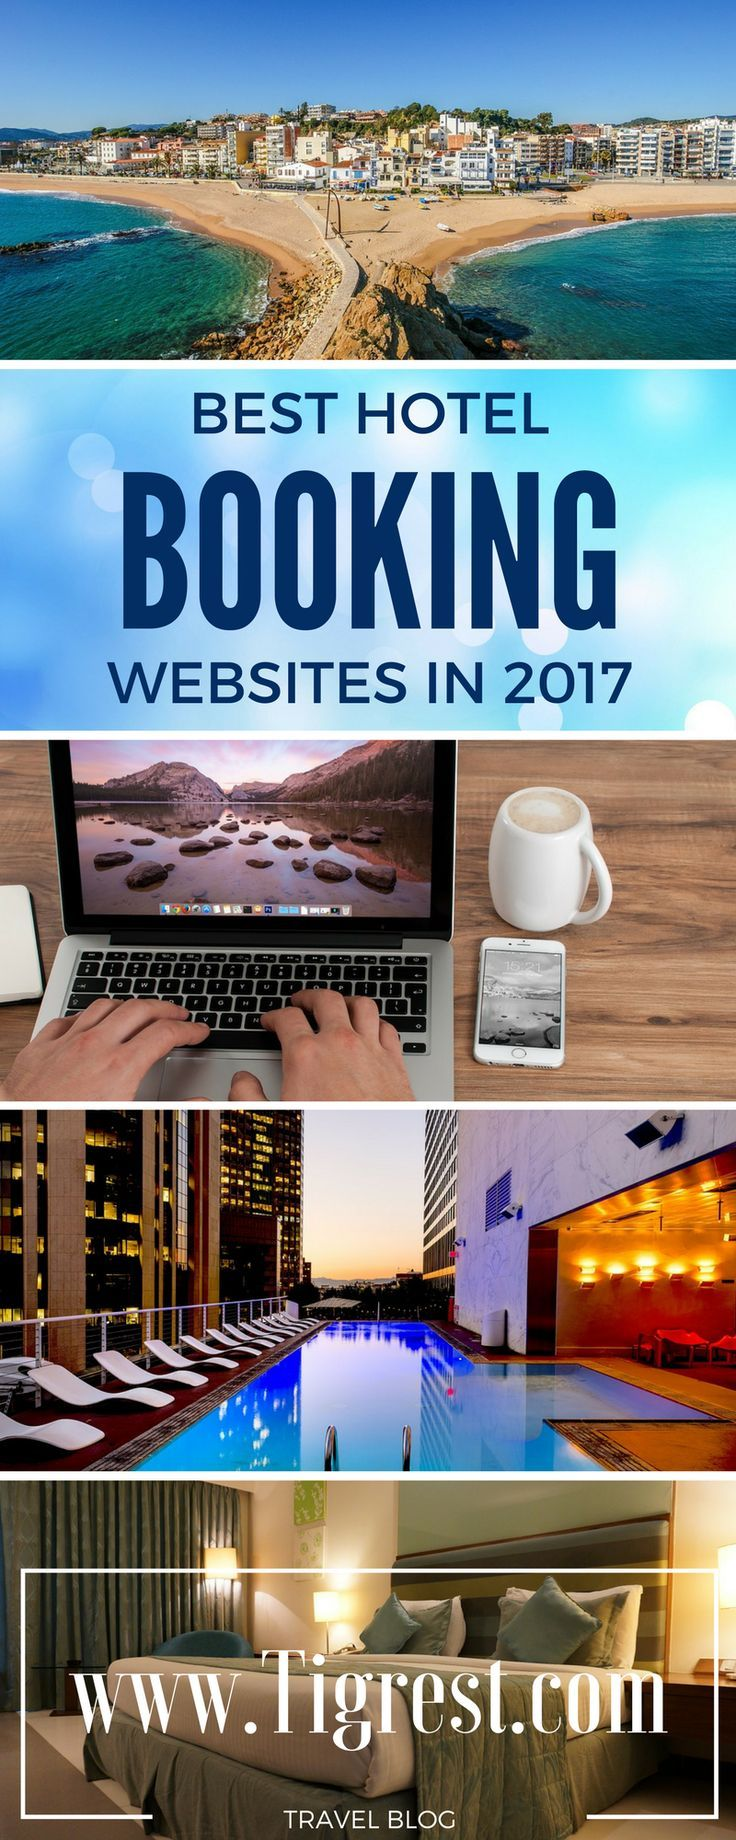 Best hotel booking websites in 2017 - why do we need them, which ones are the best and why, where to look for good rates: